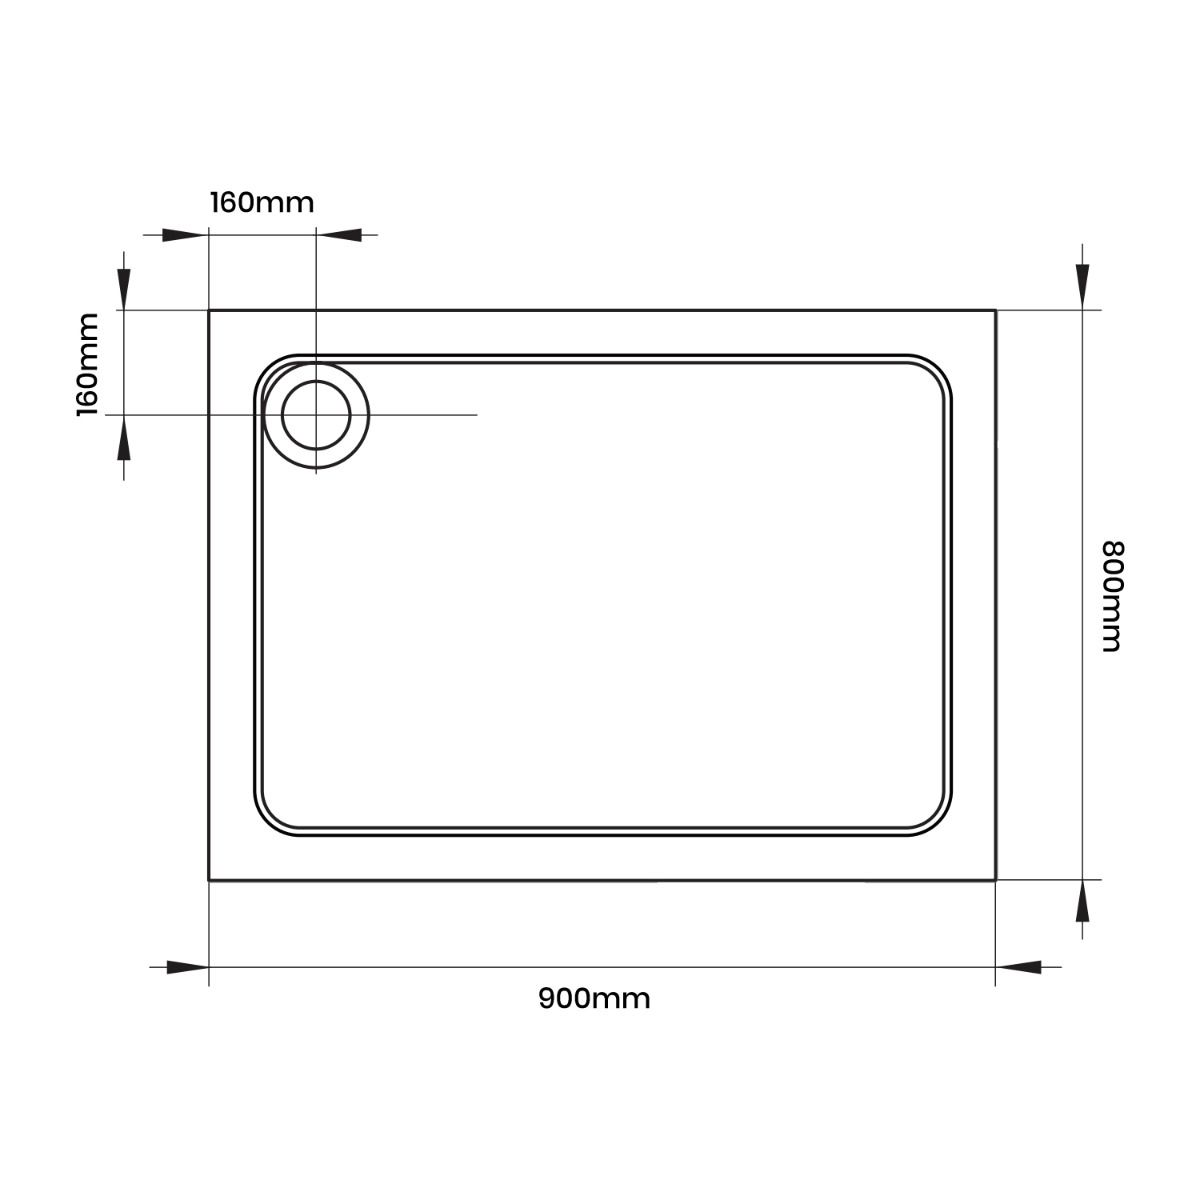 April Rectangular 900 x 800 Shower Tray Line Drawing